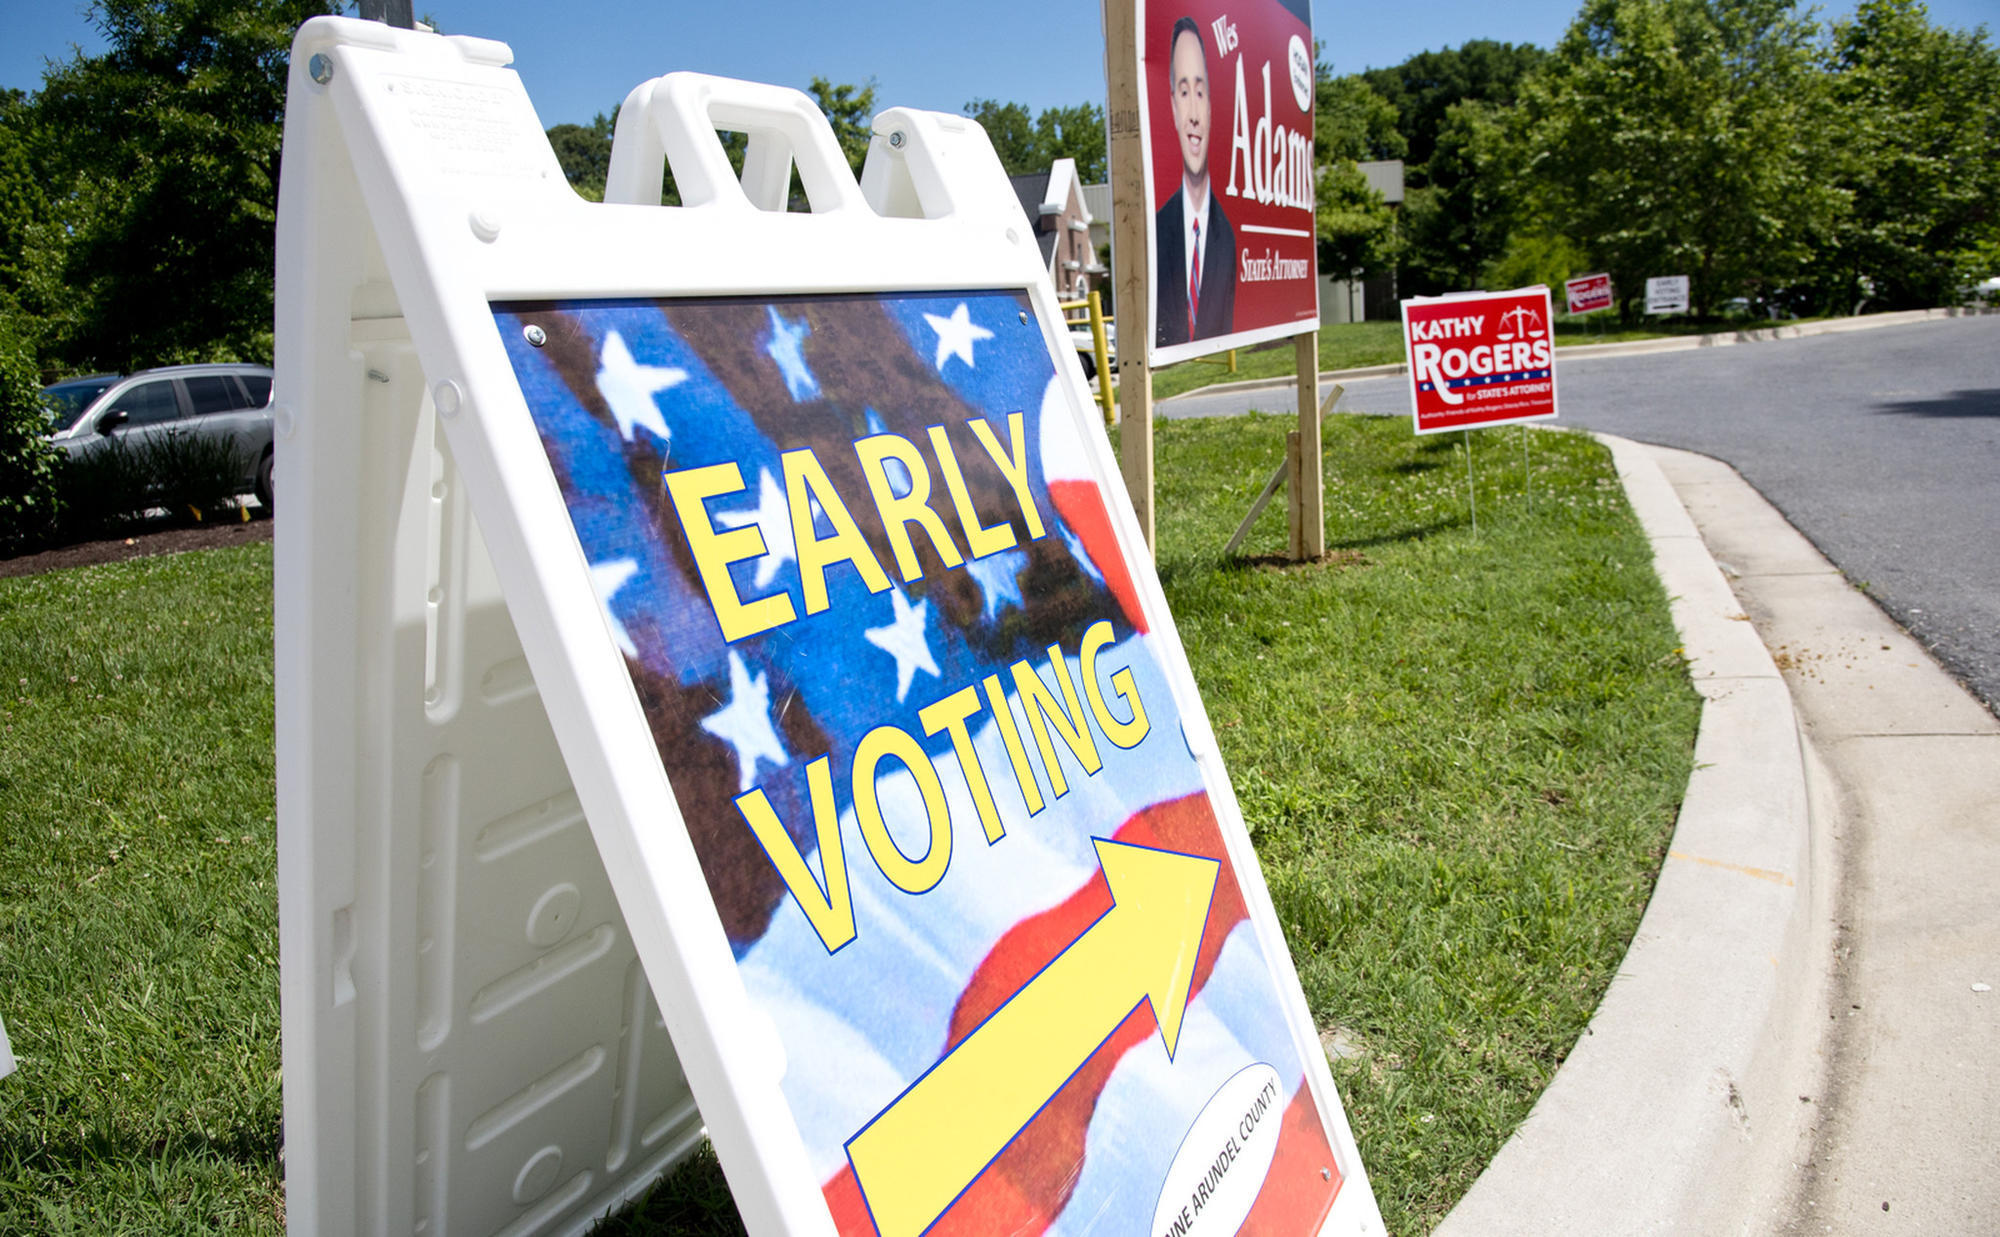 Maryland early voting is up 55 percent over 2014 turnout. What does that surge tell us?